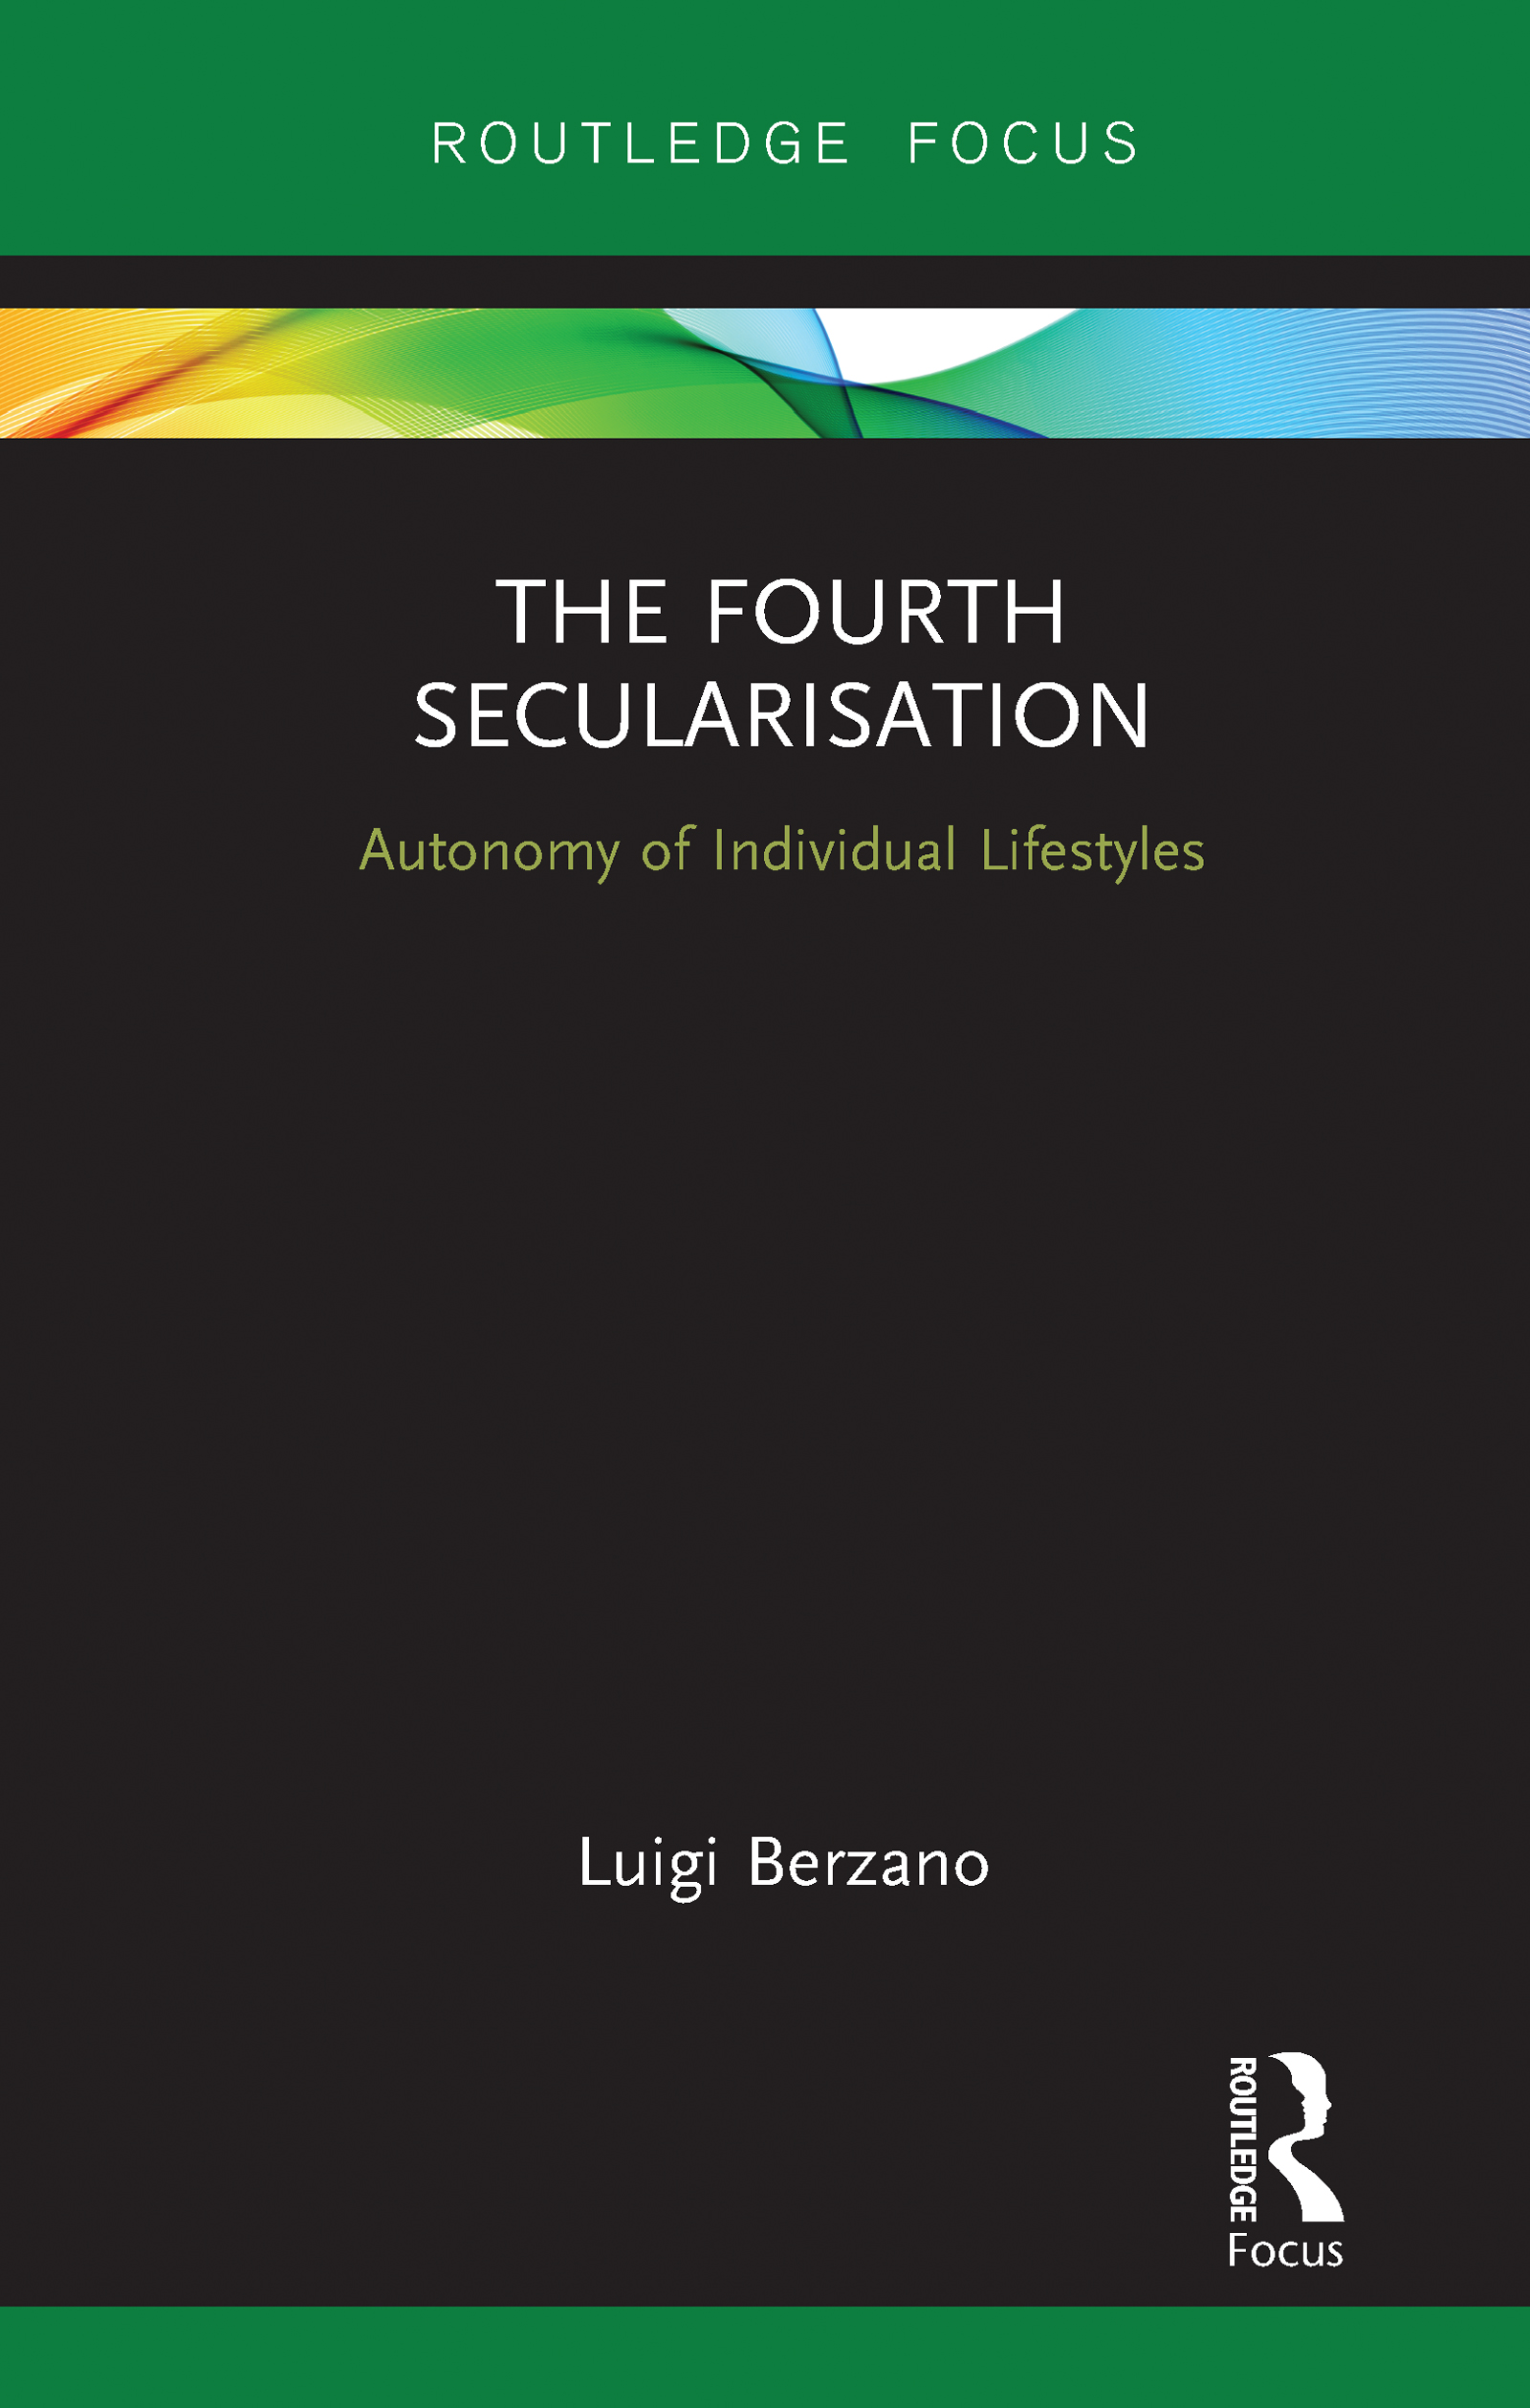 The Fourth Secularisation